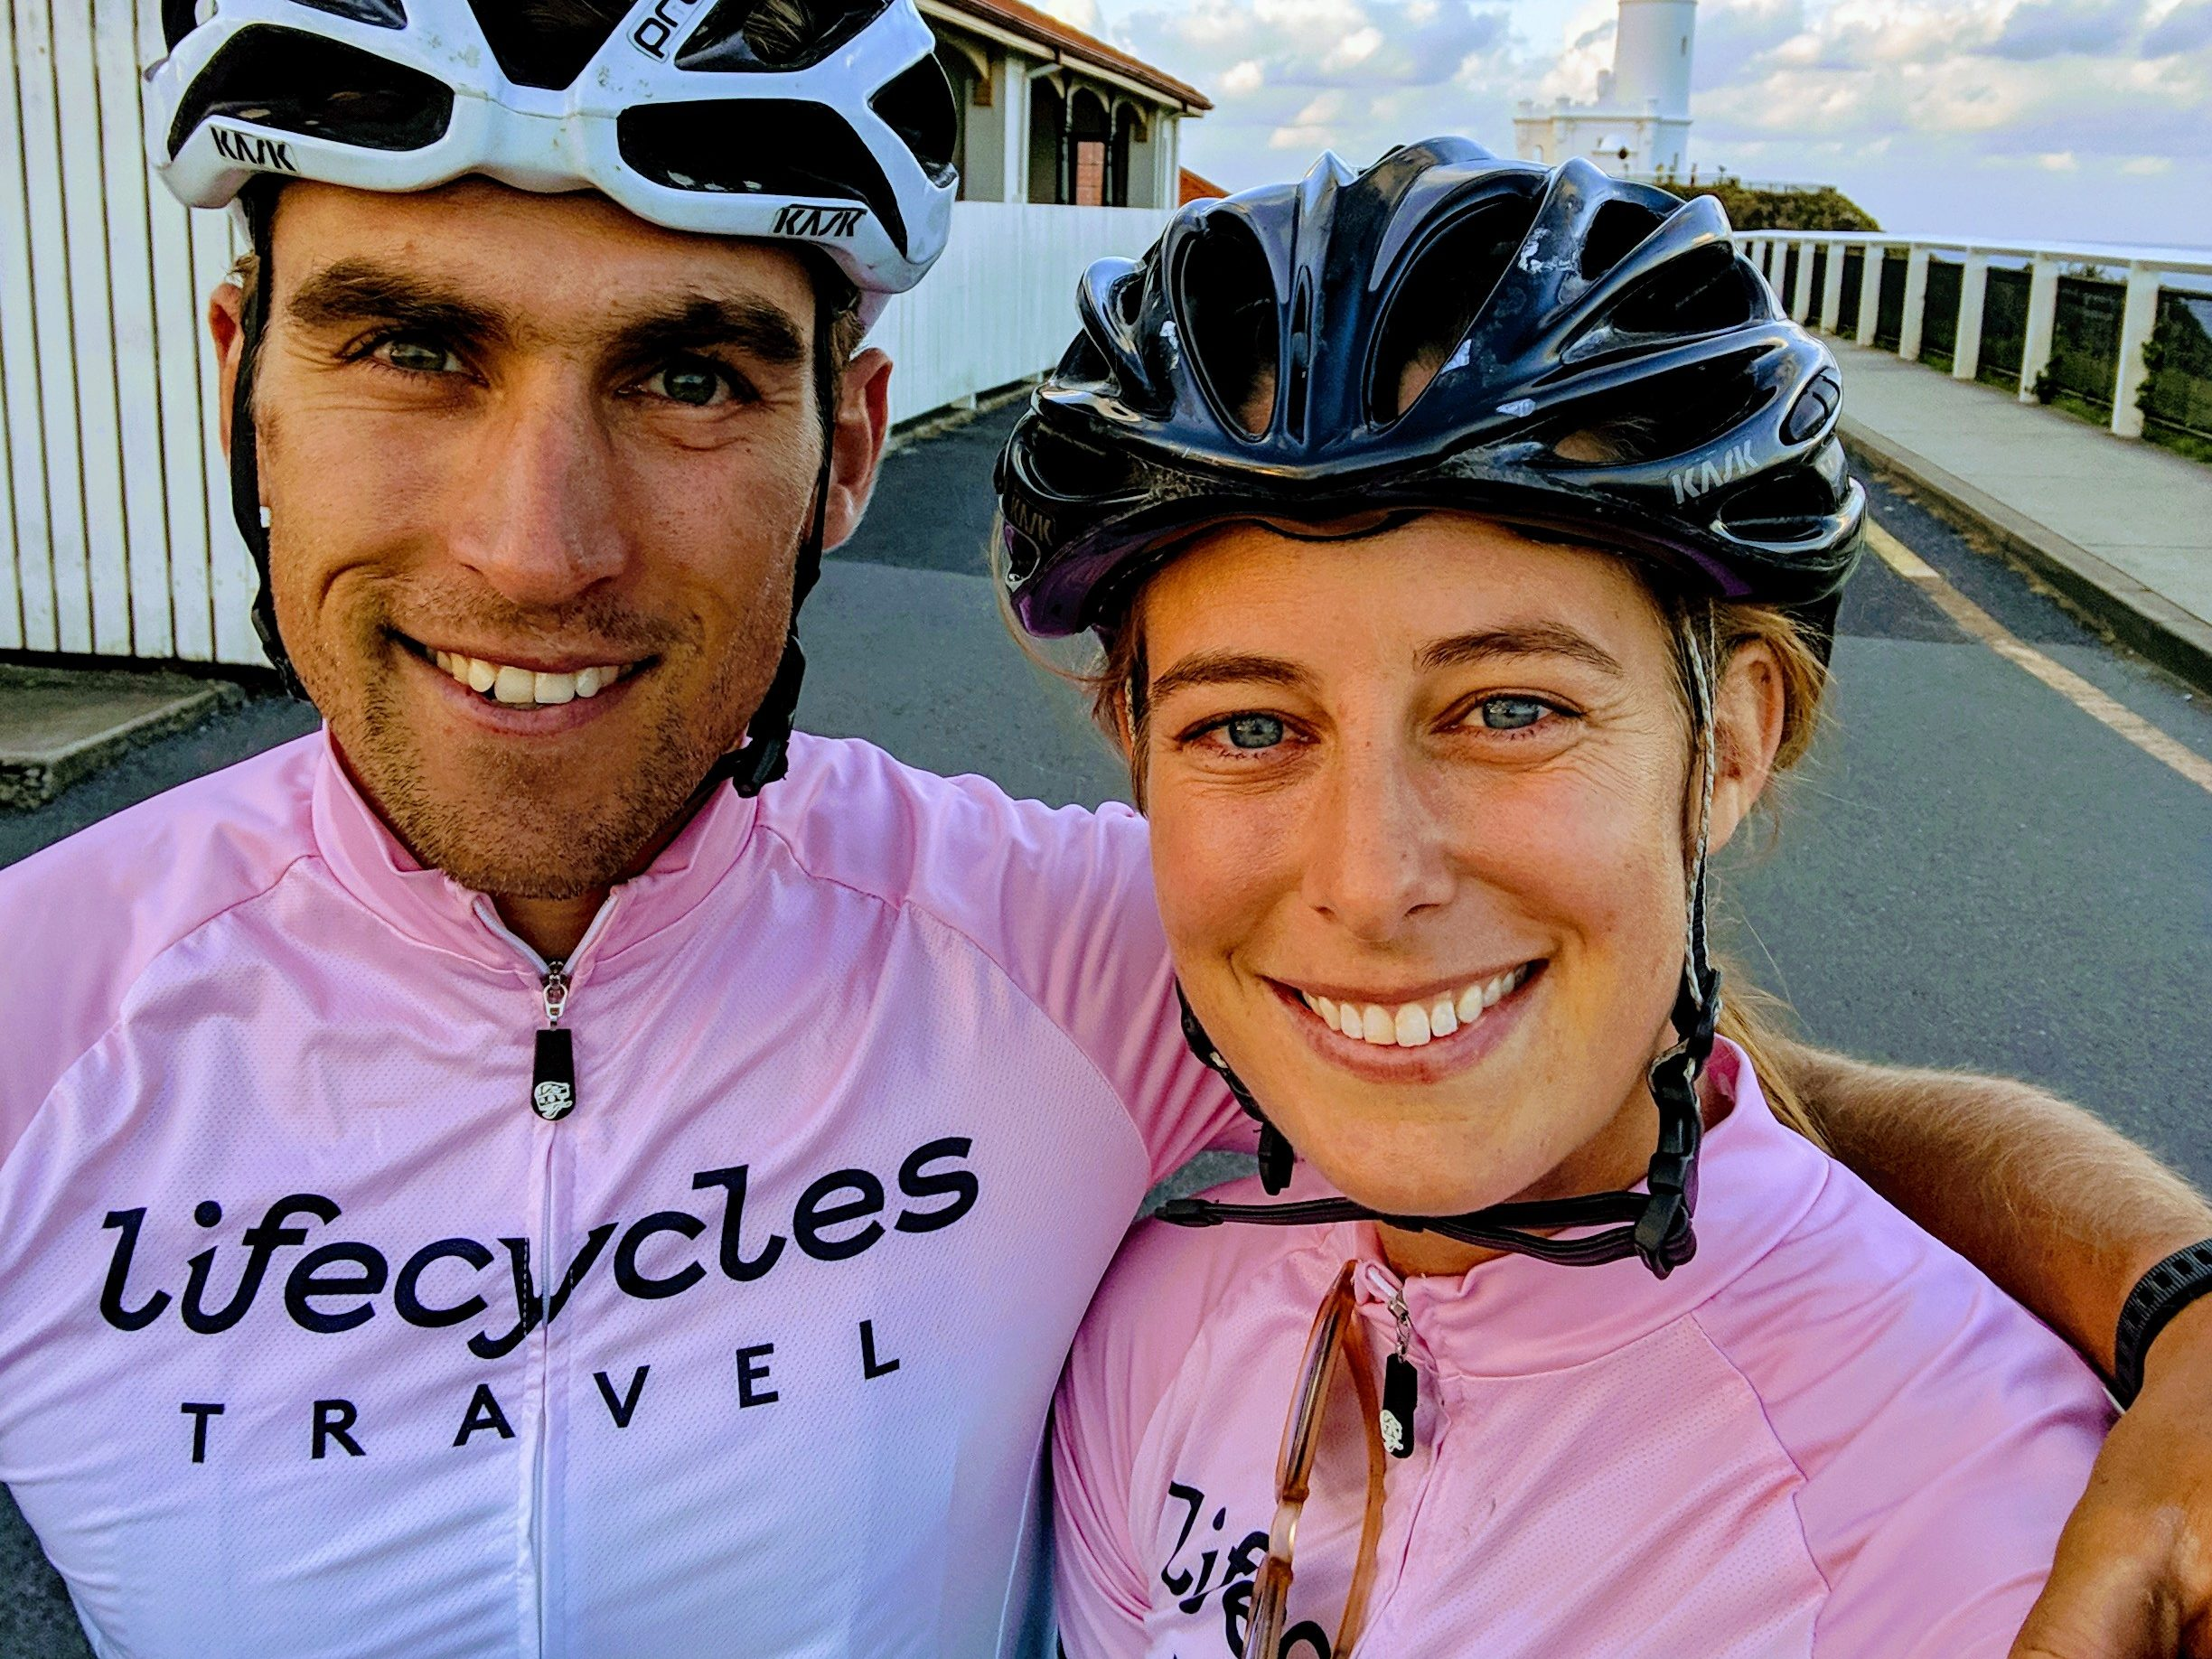 Alice and Chris owners of Lifecycles Travel